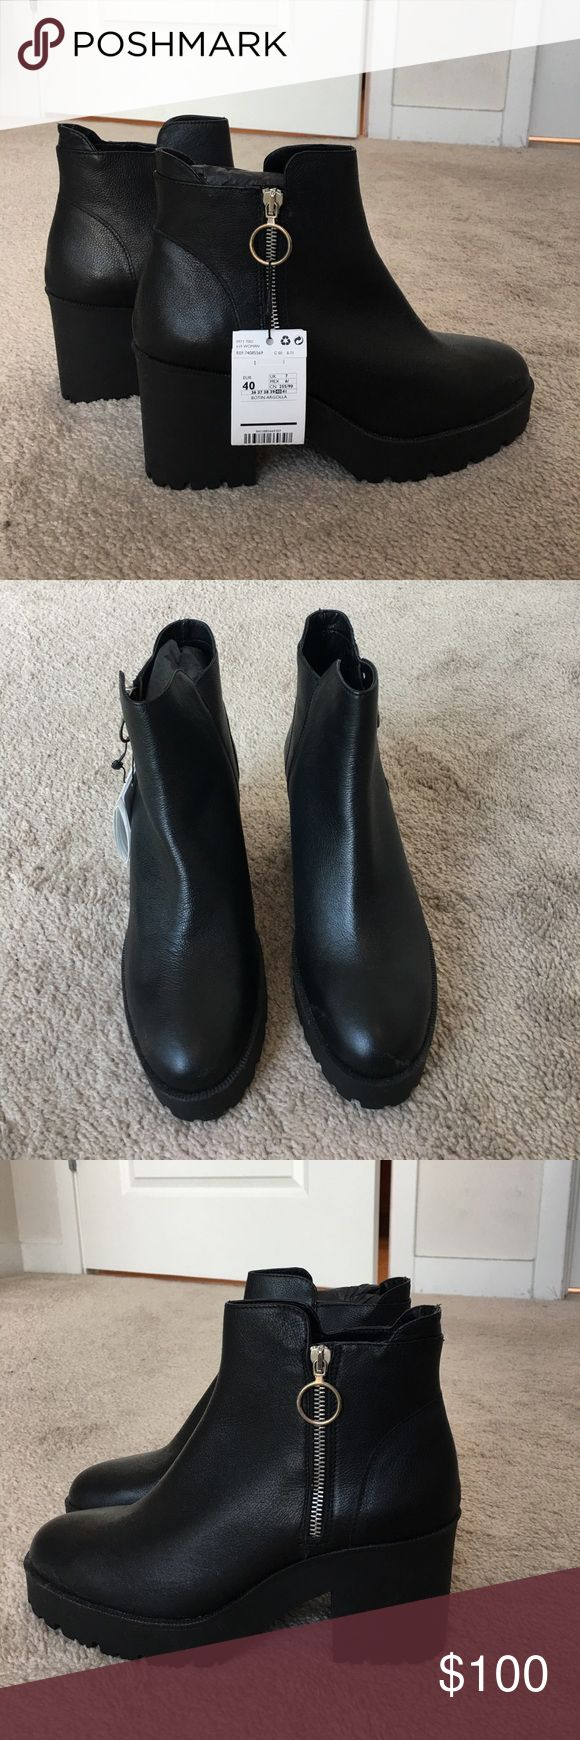 Mango Platform Ankle Boot Sold out! These are brand new with an 8 cm heel. Side zipper and track sole. I have another pair of these that are lasting me forever, so I don't need these! Fit closer to 9.5 than 10. Mango Shoes Ankle Boots & Booties